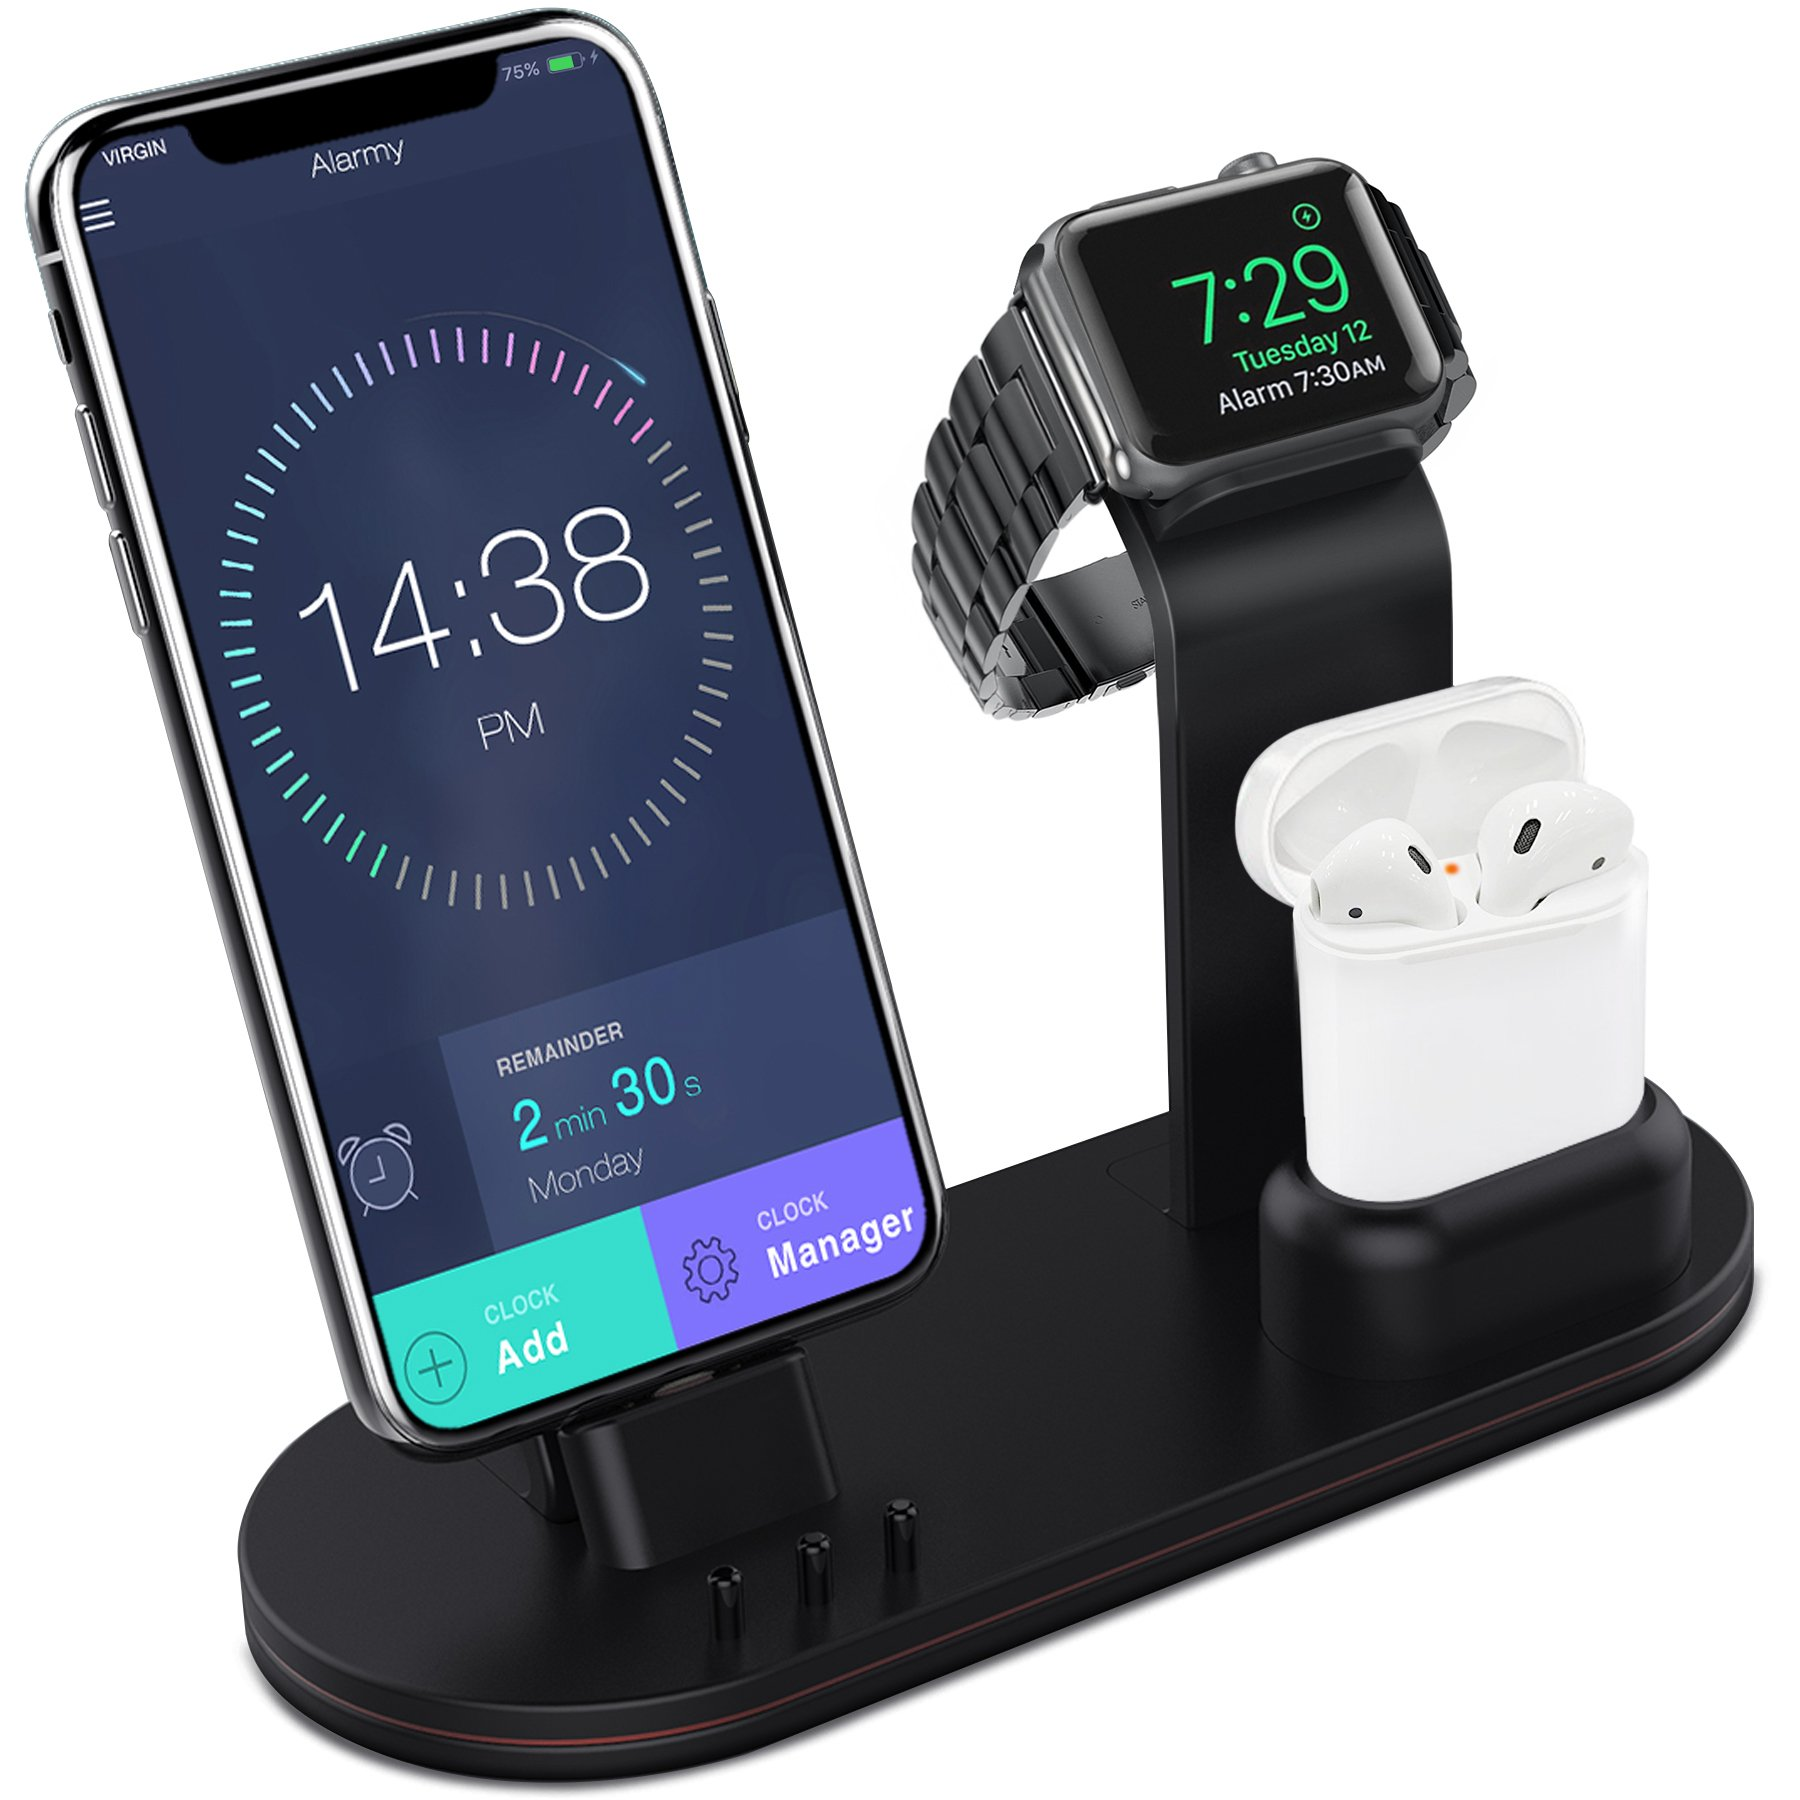 OLEBR Charging Stand Charging Docks Suitable for iWatch Series 4/3/2/1/ AirPods/iPhone Xs/iPhone Xs Max/iPhone XR/X/8/8Plus/7/7 Plus /6S /6S Plus/iPad-Black by OLEBR